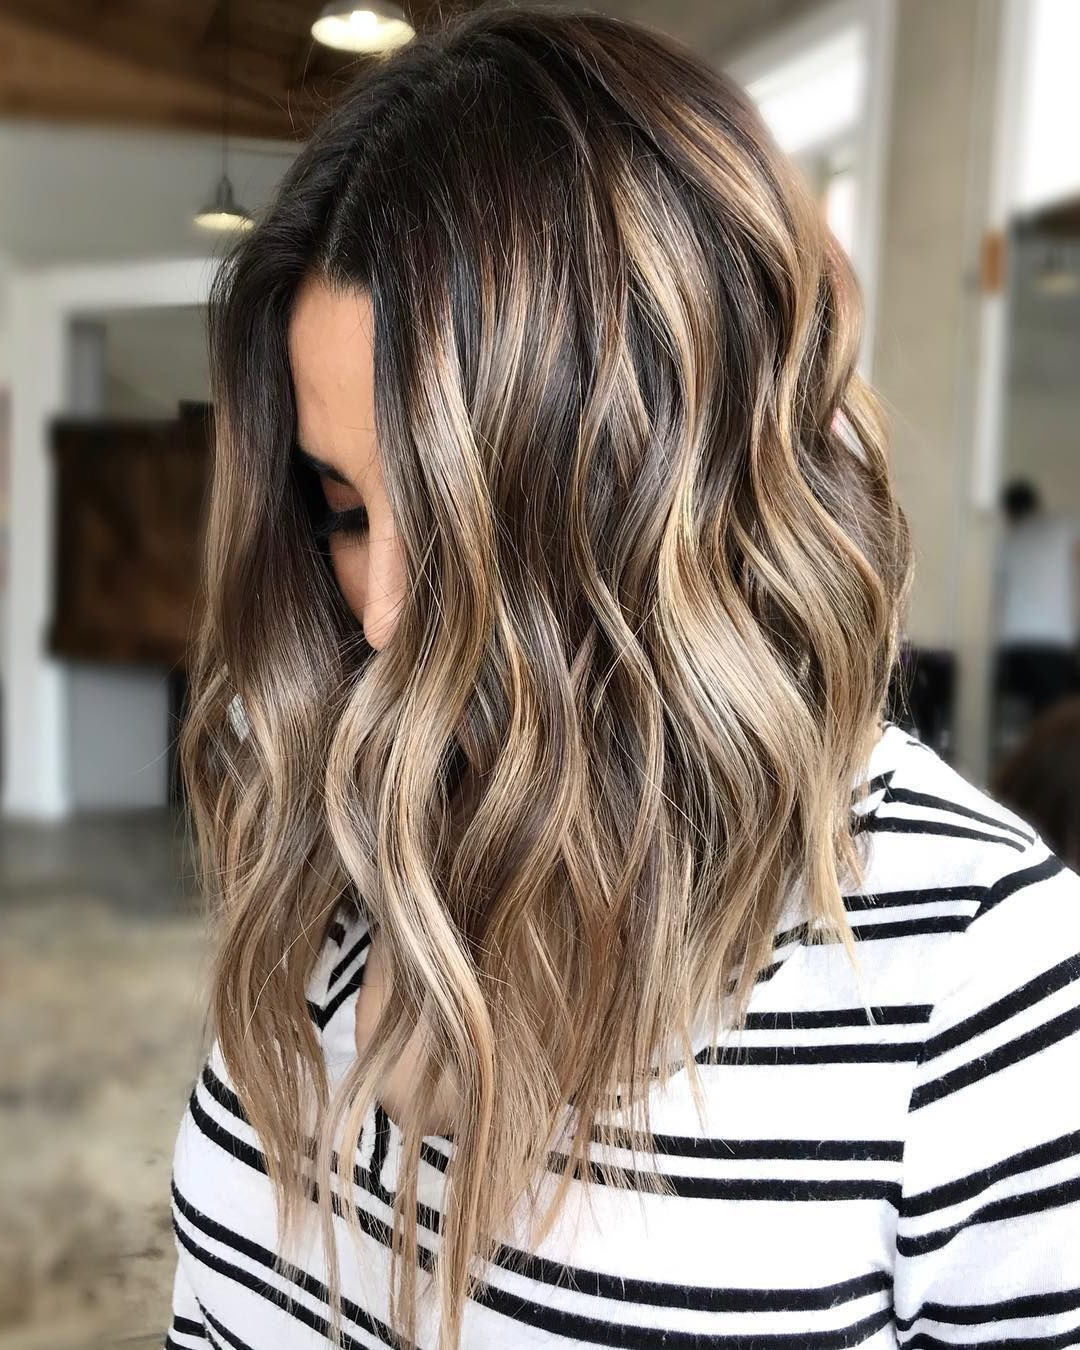 10 Top Shoulder Length Hairstyles – Wavy Hair, Women Medium Intended For Favorite Shoulder Length Wavy Layered Hairstyles With Highlights (View 2 of 20)